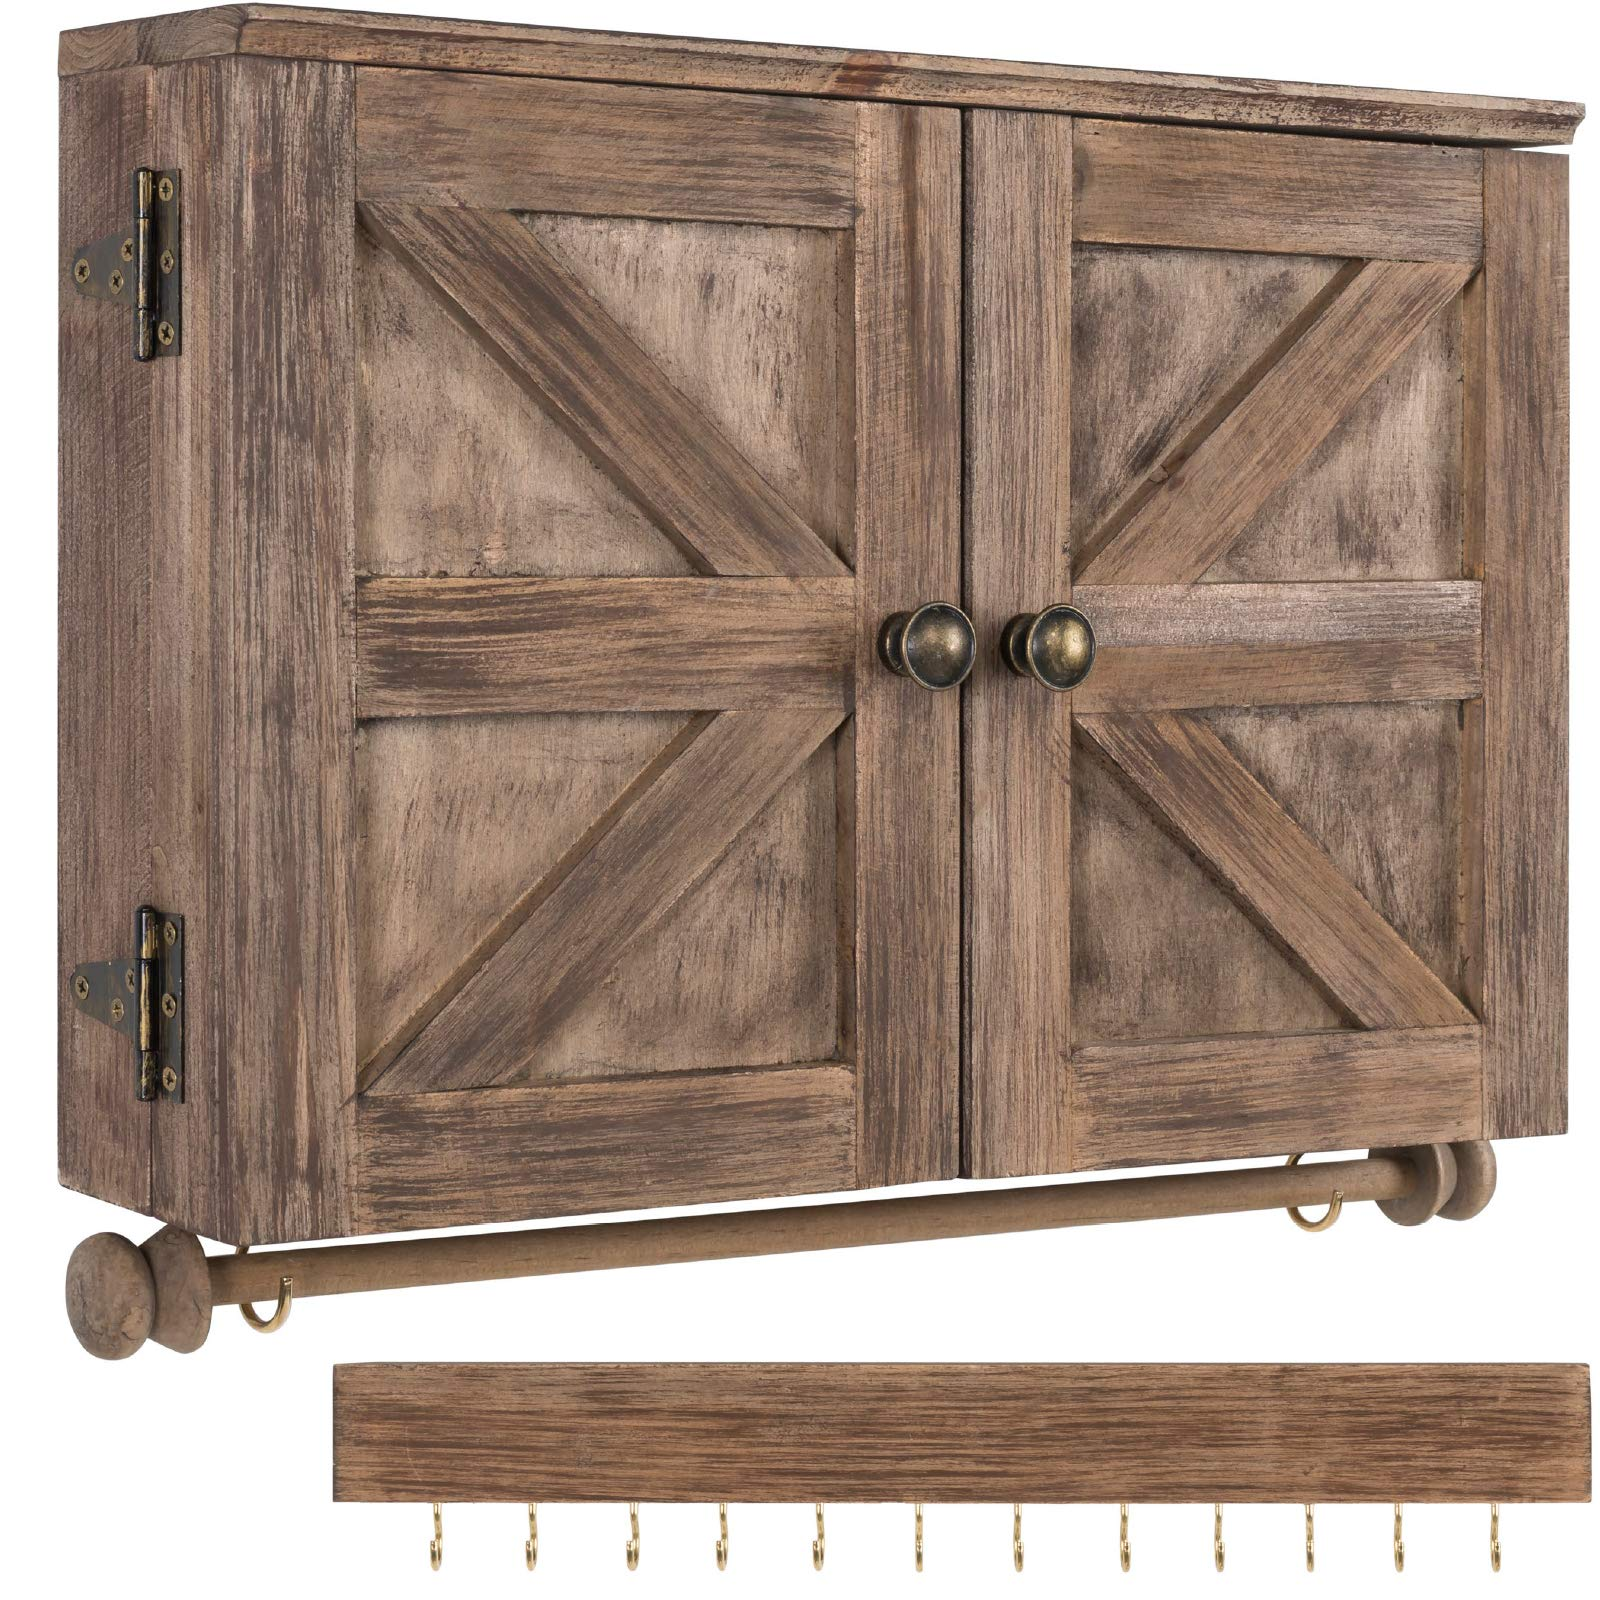 Rustic Wall Mounted Jewelry Organizer with Wooden Barndoor Decor ...